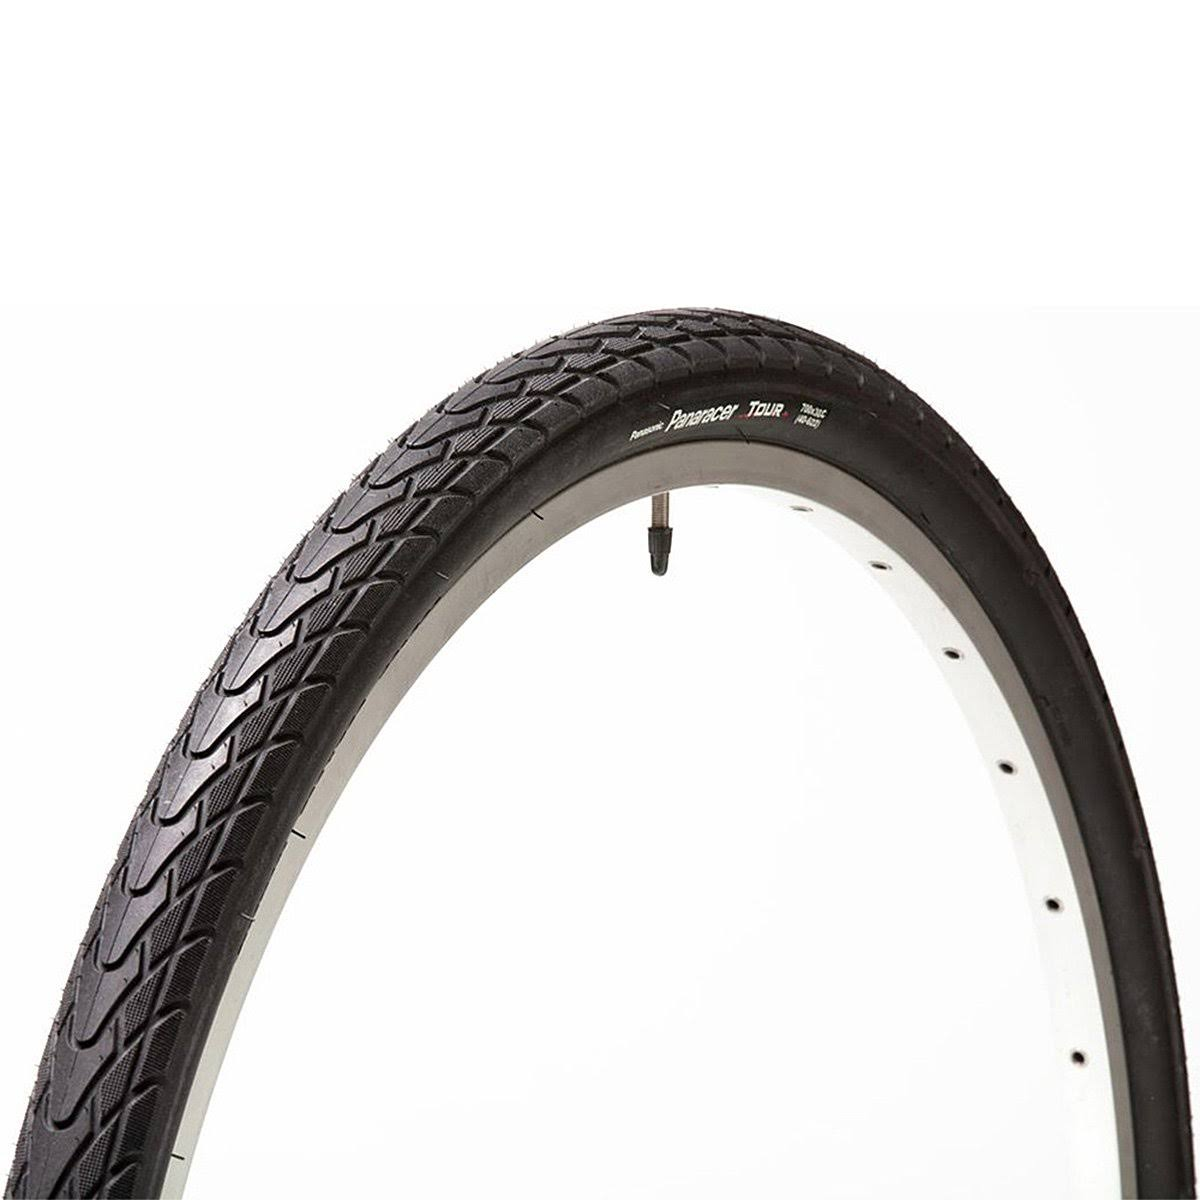 Panaracer Tour Tire - with Wire Bead, 700 x 42C